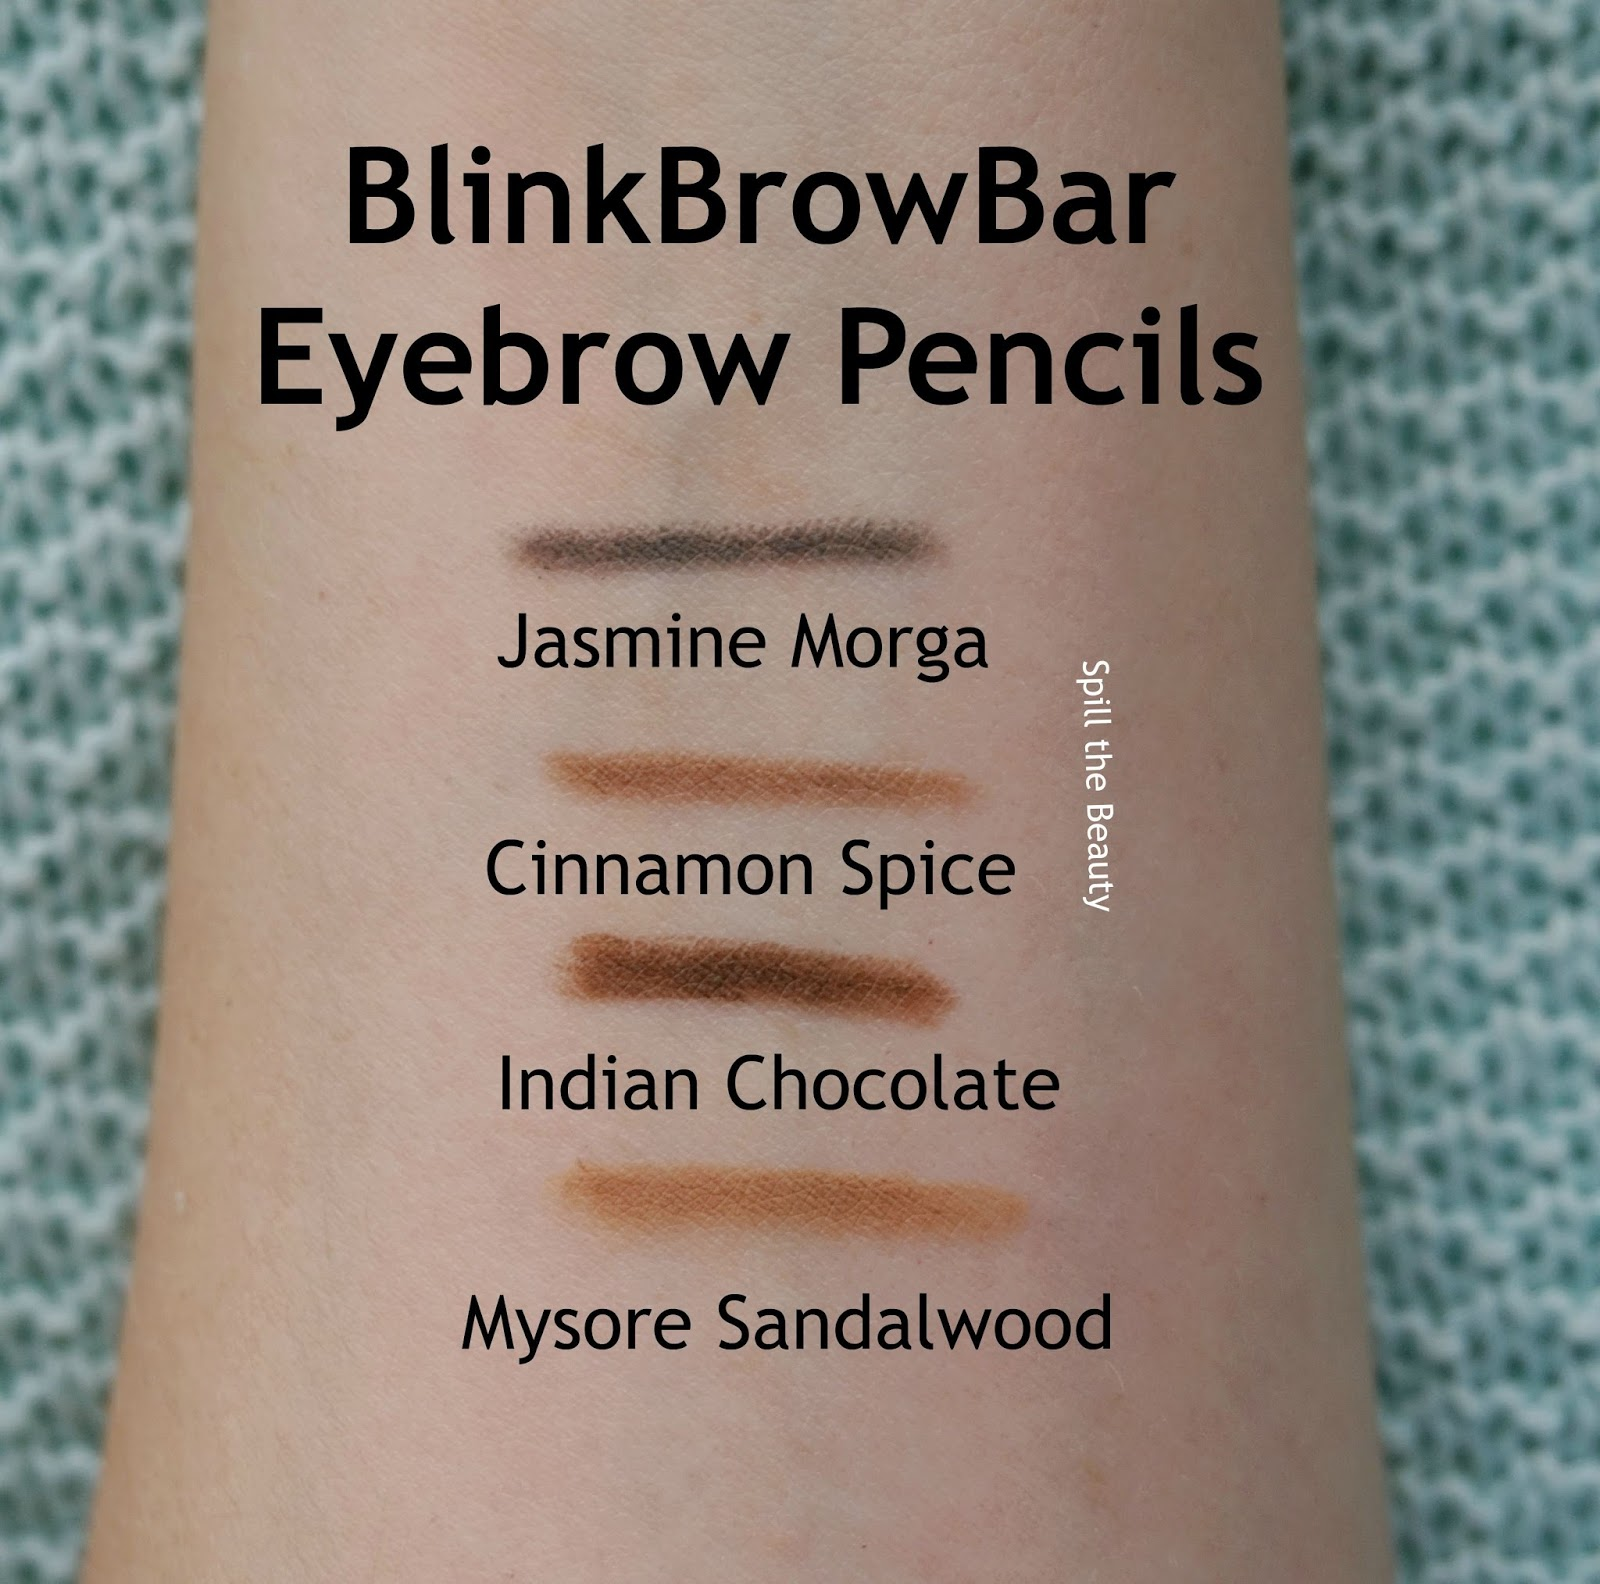 blinkbrowbar eyebrow pencil arm swatches